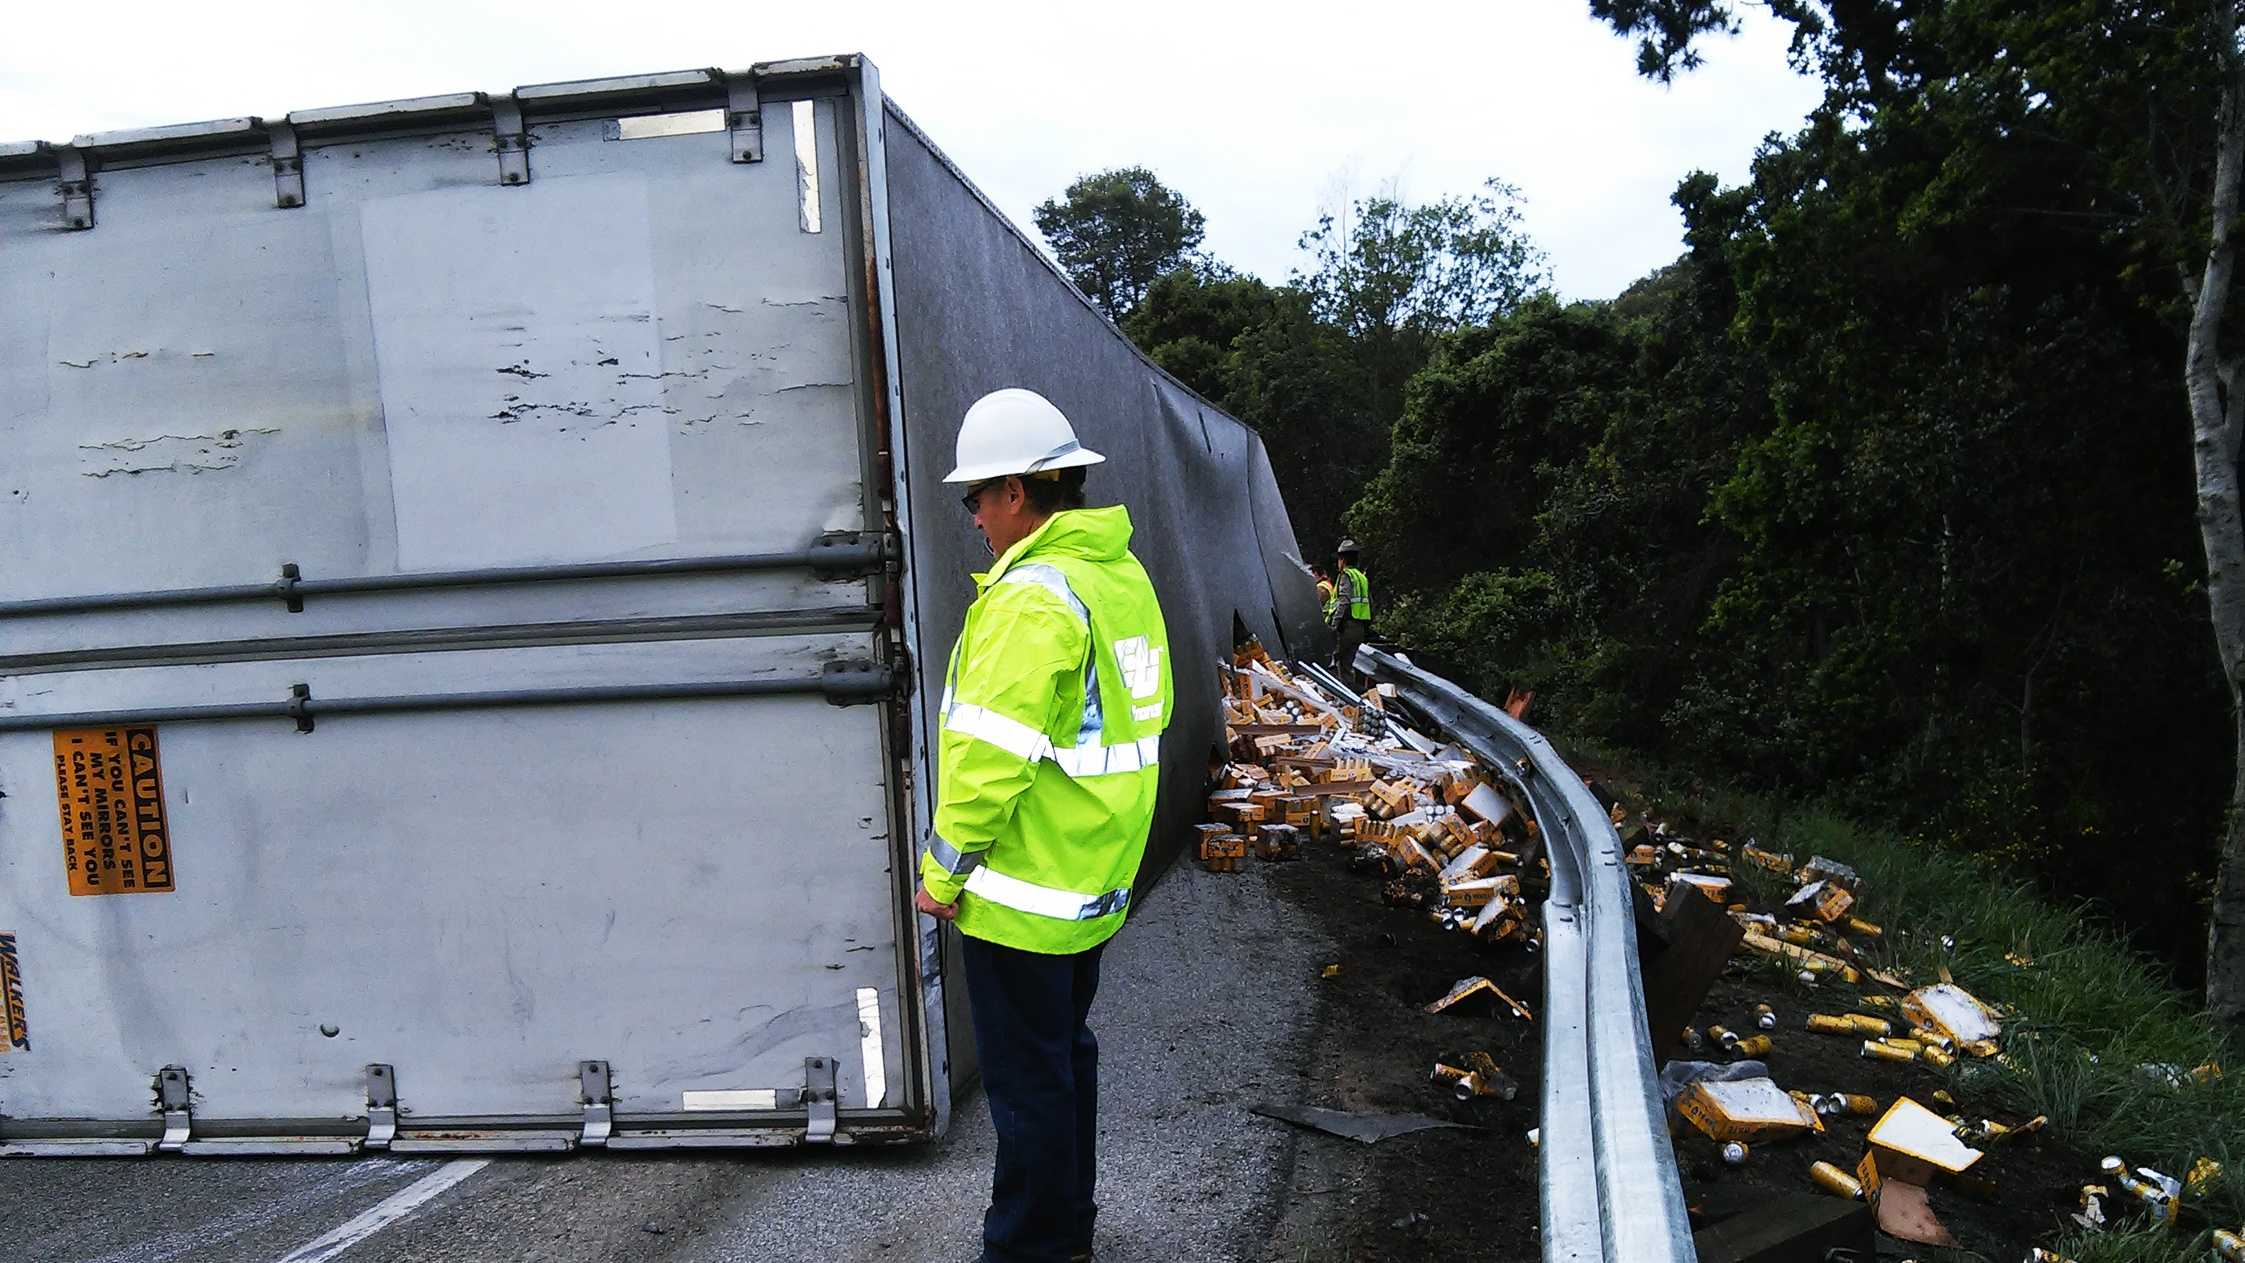 A big-rig crashed on the Highway 17-Highway 1 interchange in Santa Cruz on March 16, 2015.